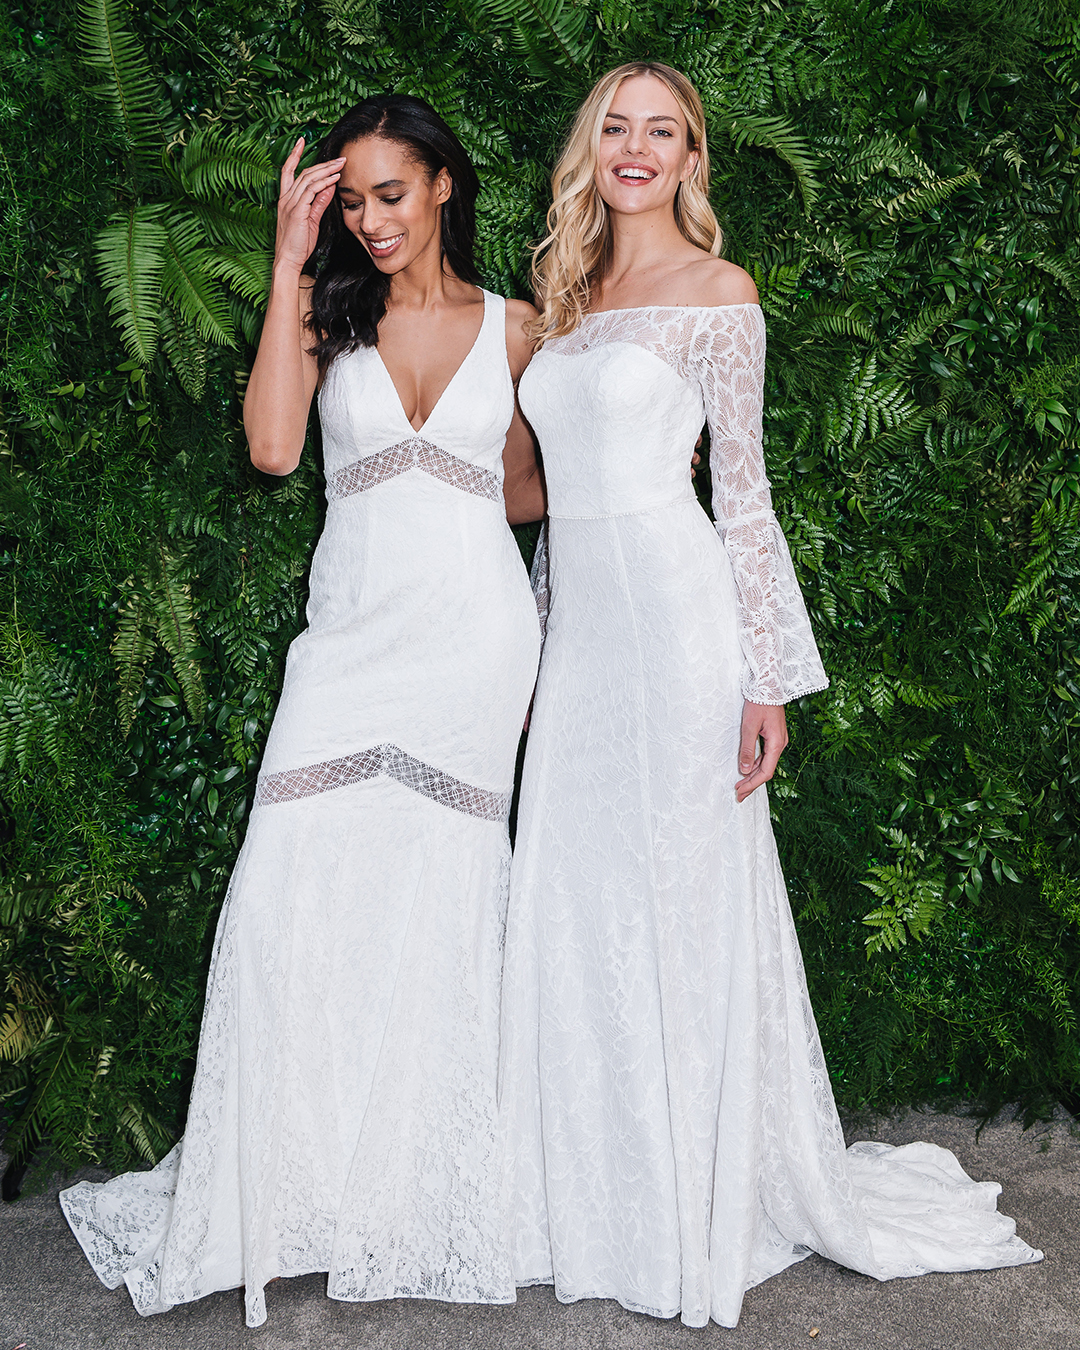 2019 Fall Wedding Dress Trends